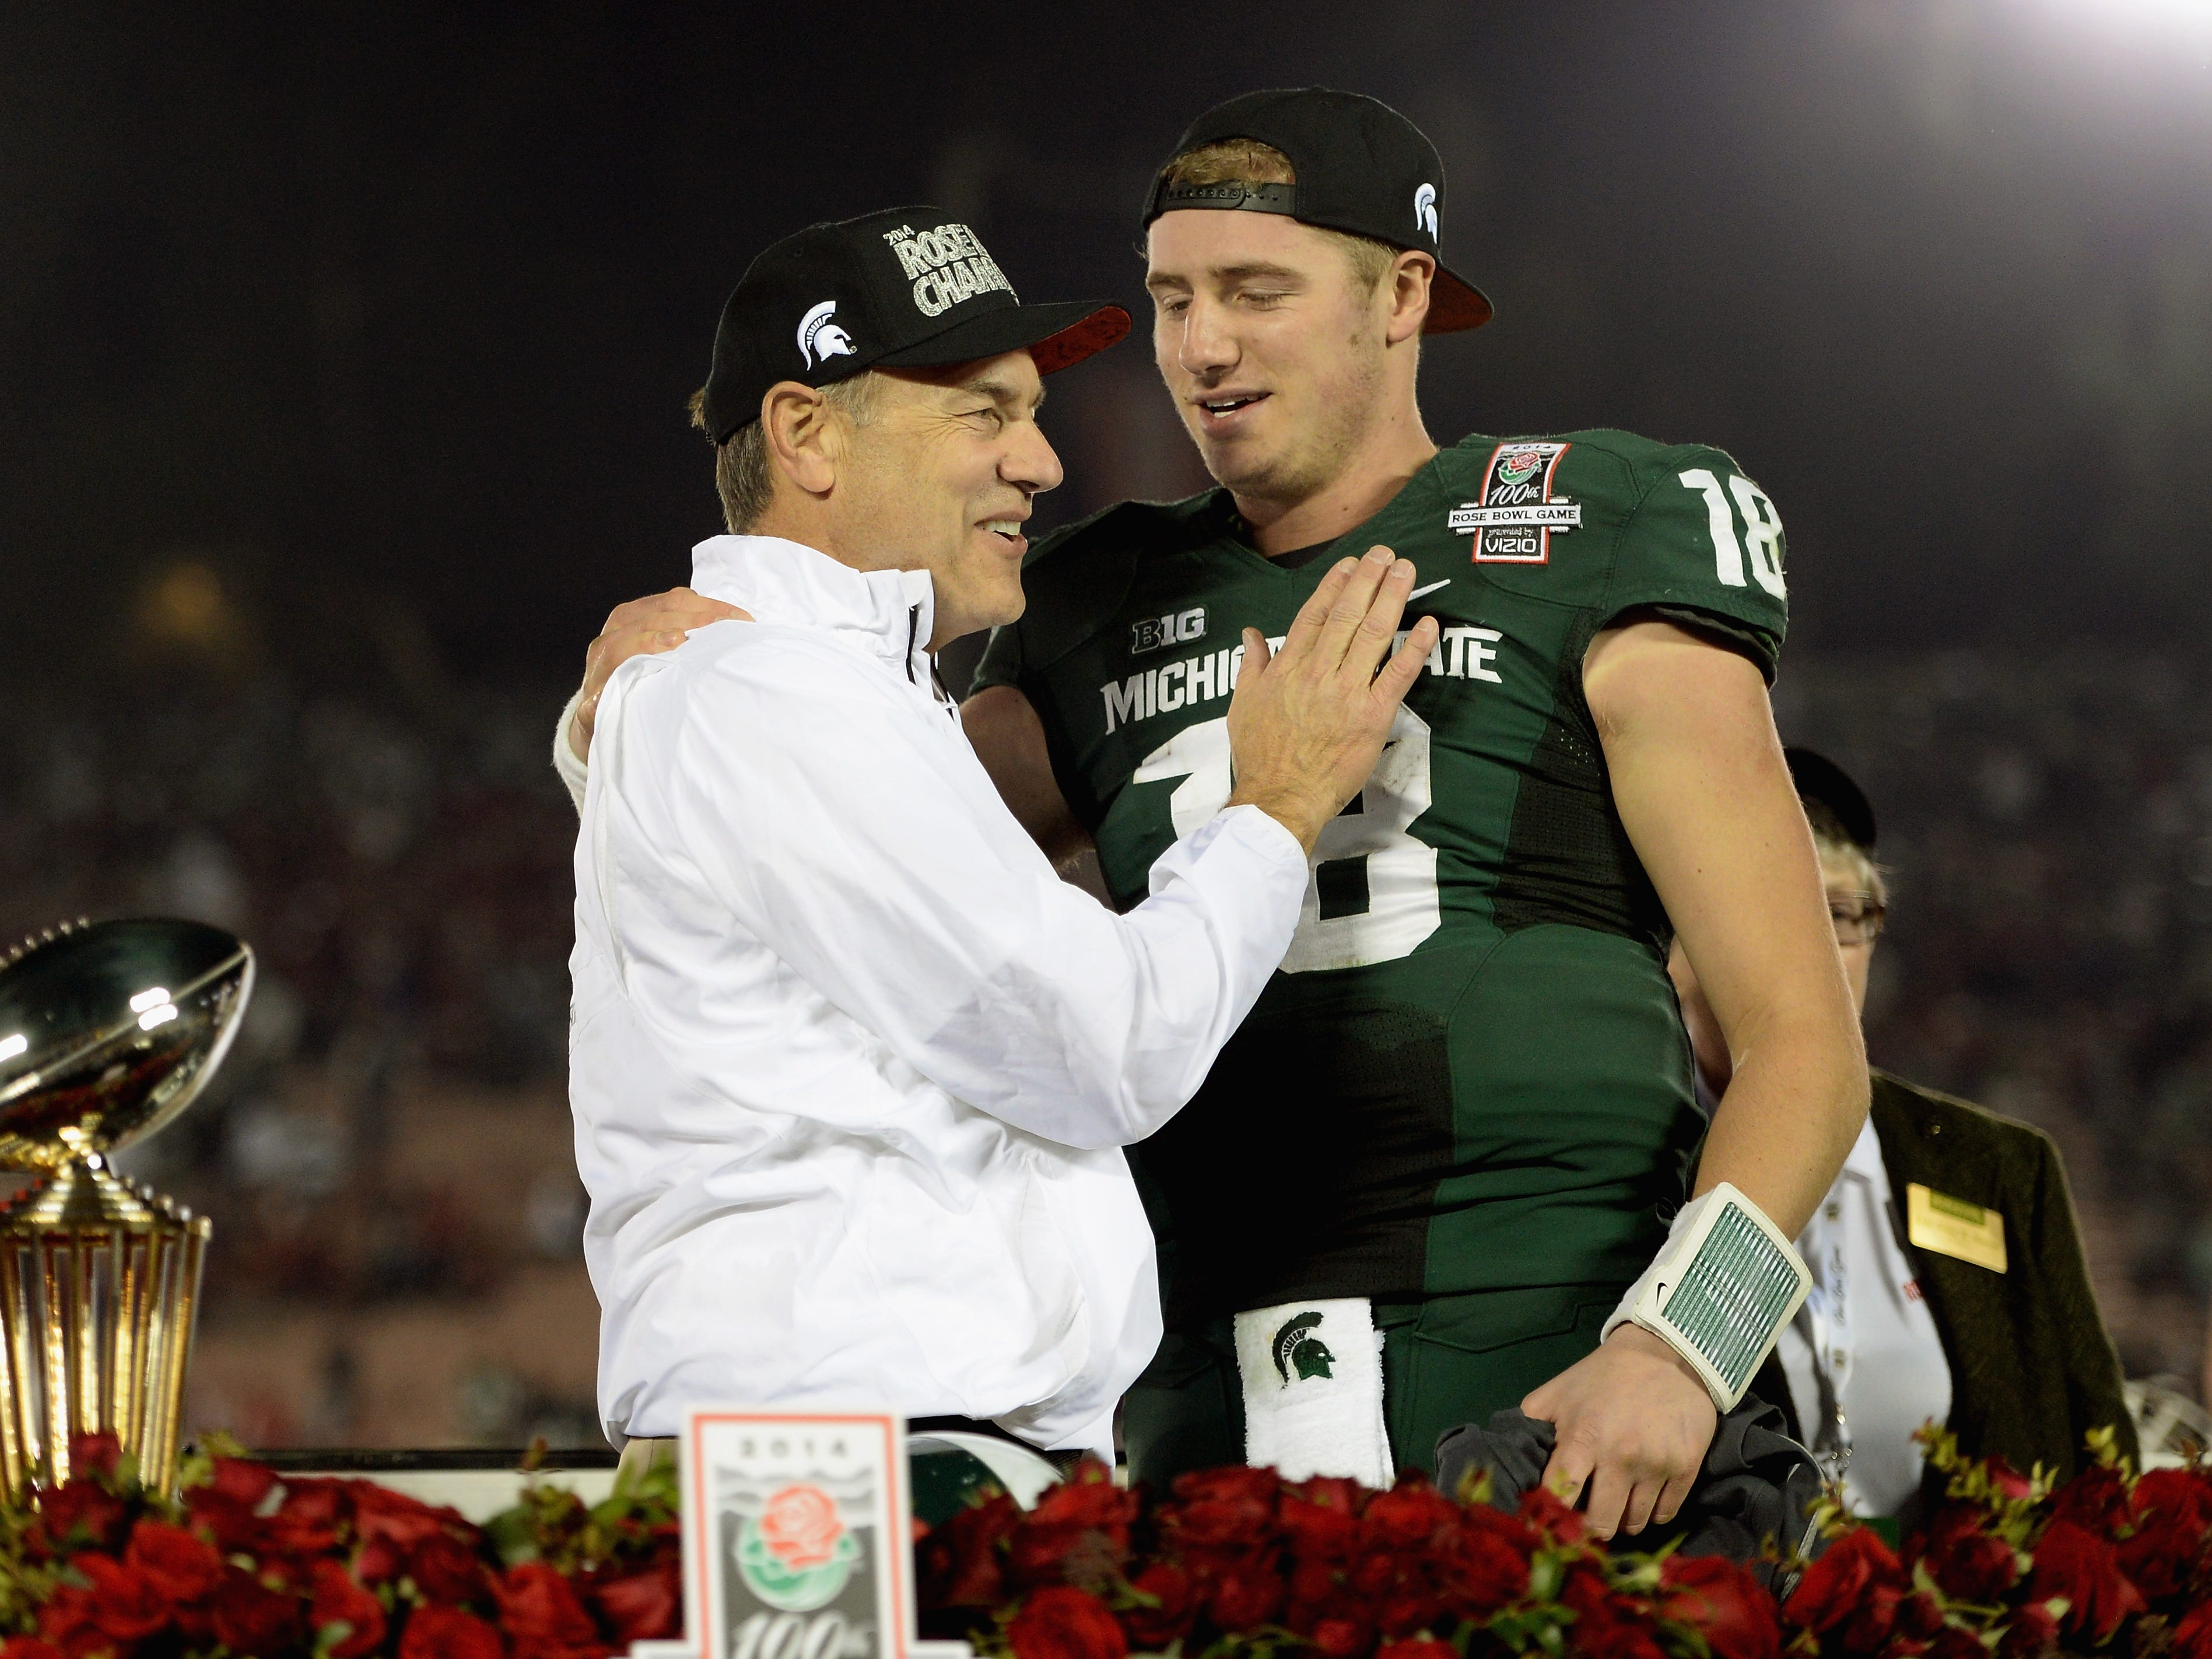 Jan. 1, 2014: No. 4 Michigan State 24, No. 5 Stanford 20 (Rose Bowl): Michigan State coach Mark Dantonio celebrates with quarterback Connor Cook after the victory,